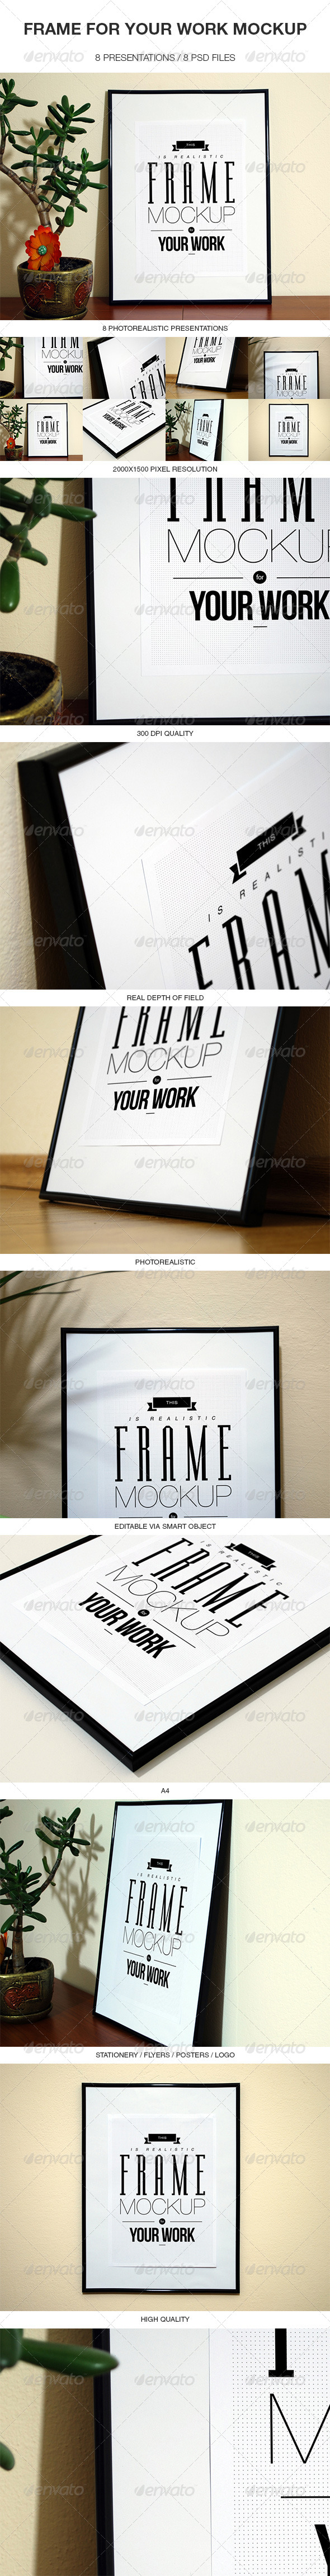 Frame For Your Work Mock-up - Print Product Mock-Ups